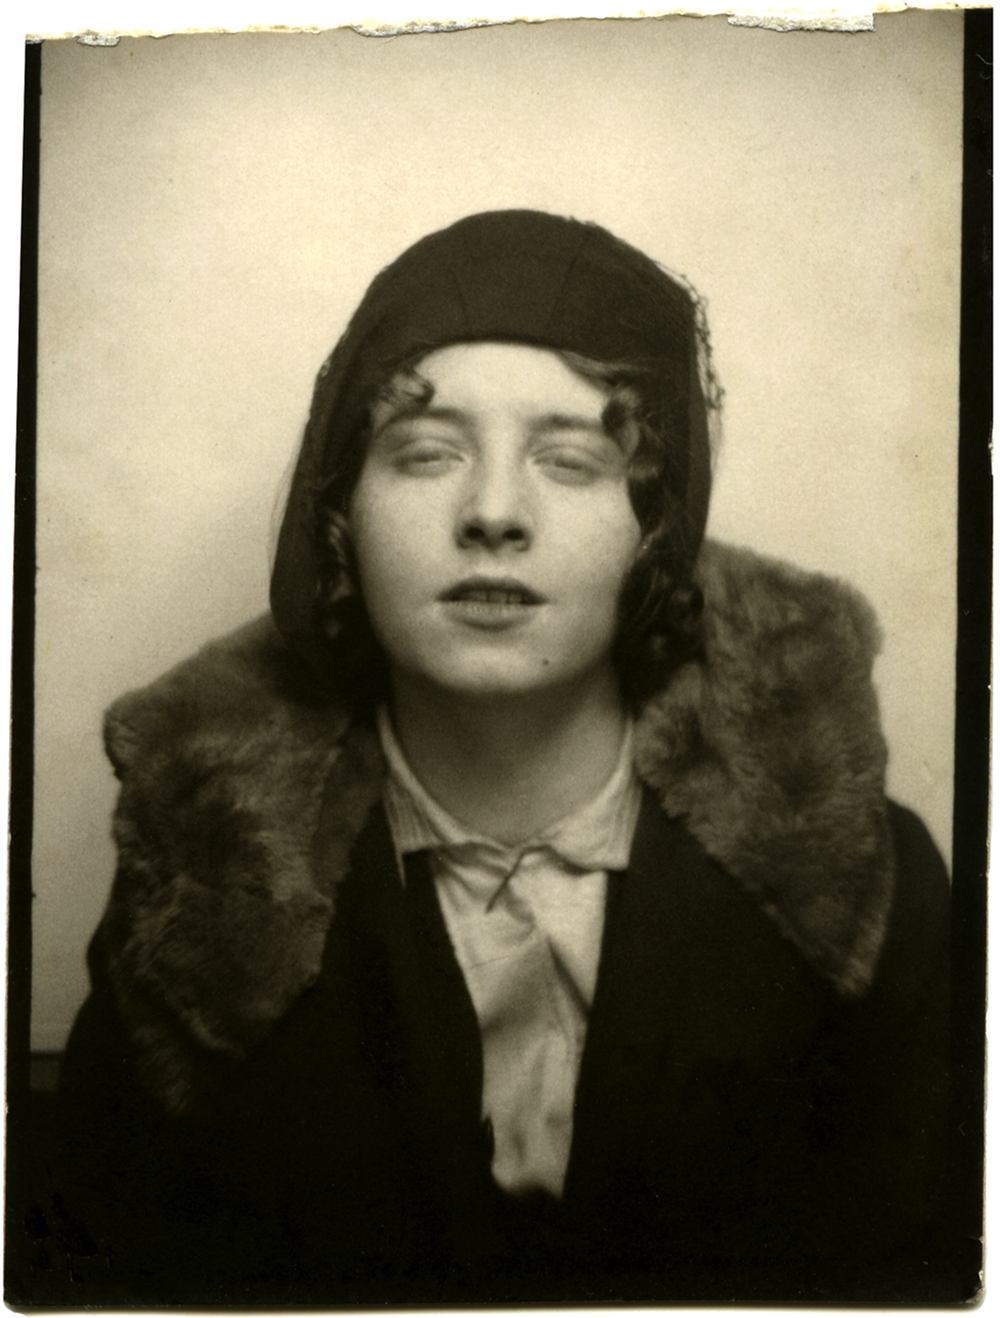 Photo booth of a 1920s Flapper Girl, with fur collar and bedroom eyes.